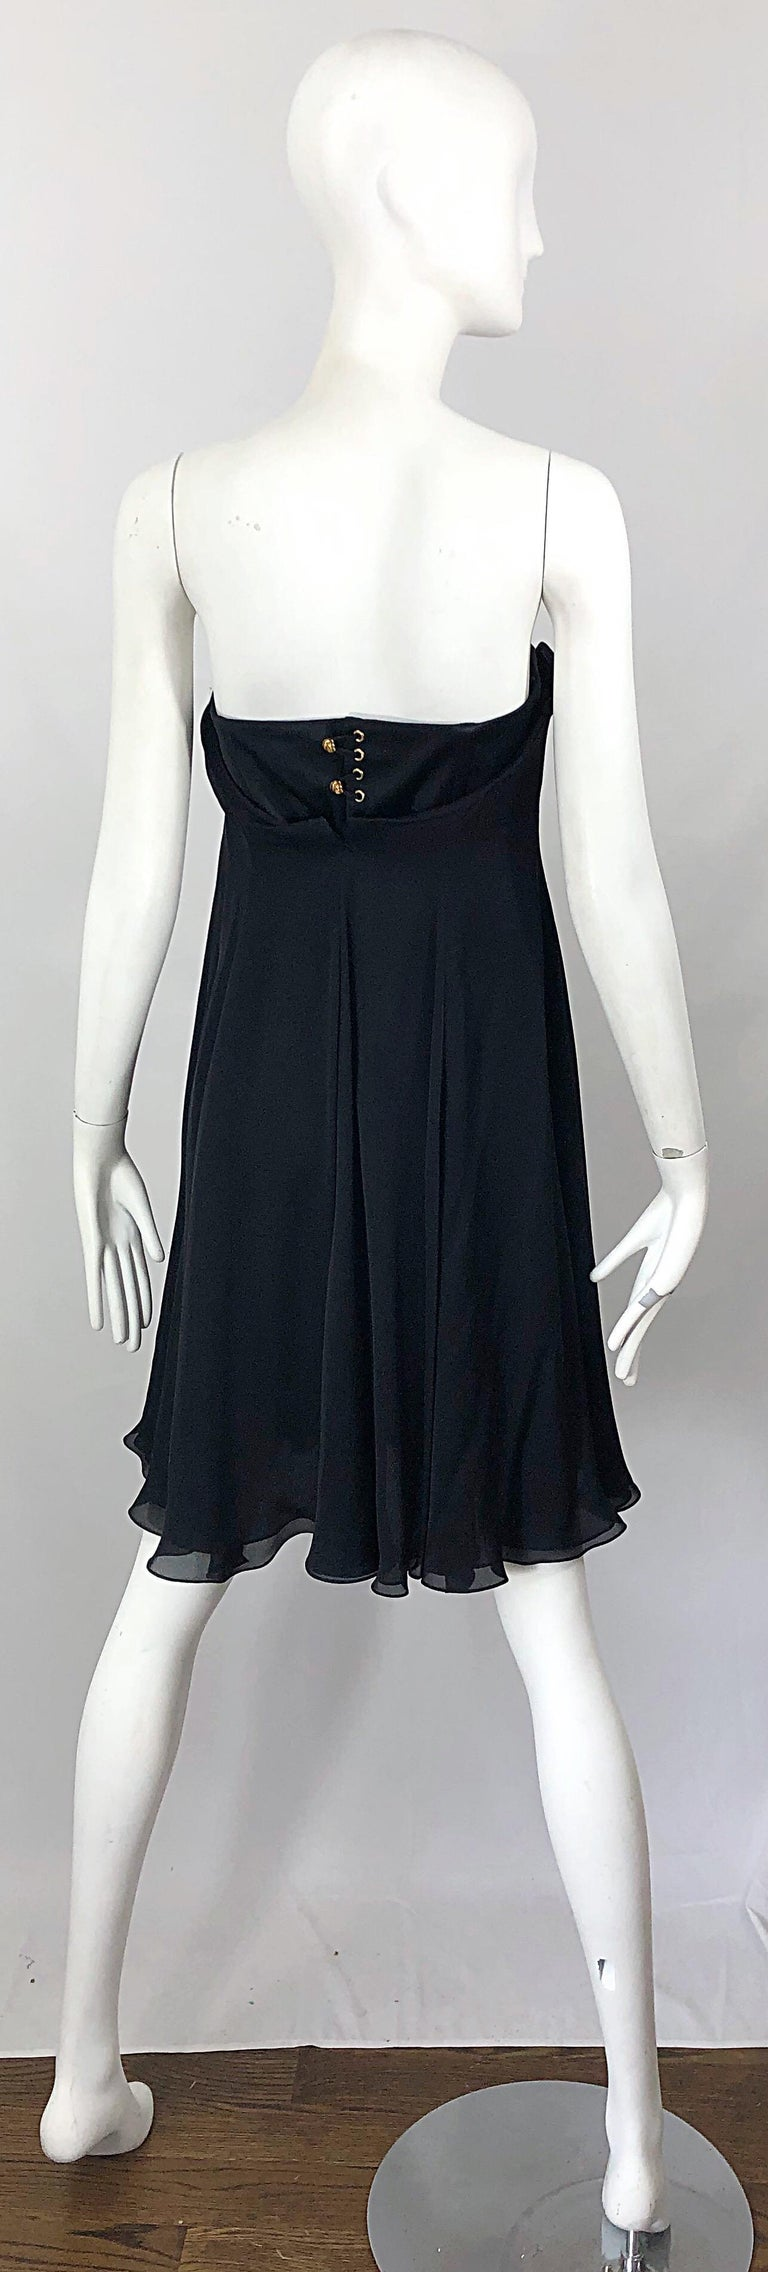 New Yves Saint Laurent Spring 2008 Size 40 / US 8 Black Silk Strapless Dress In New Condition For Sale In Chicago, IL